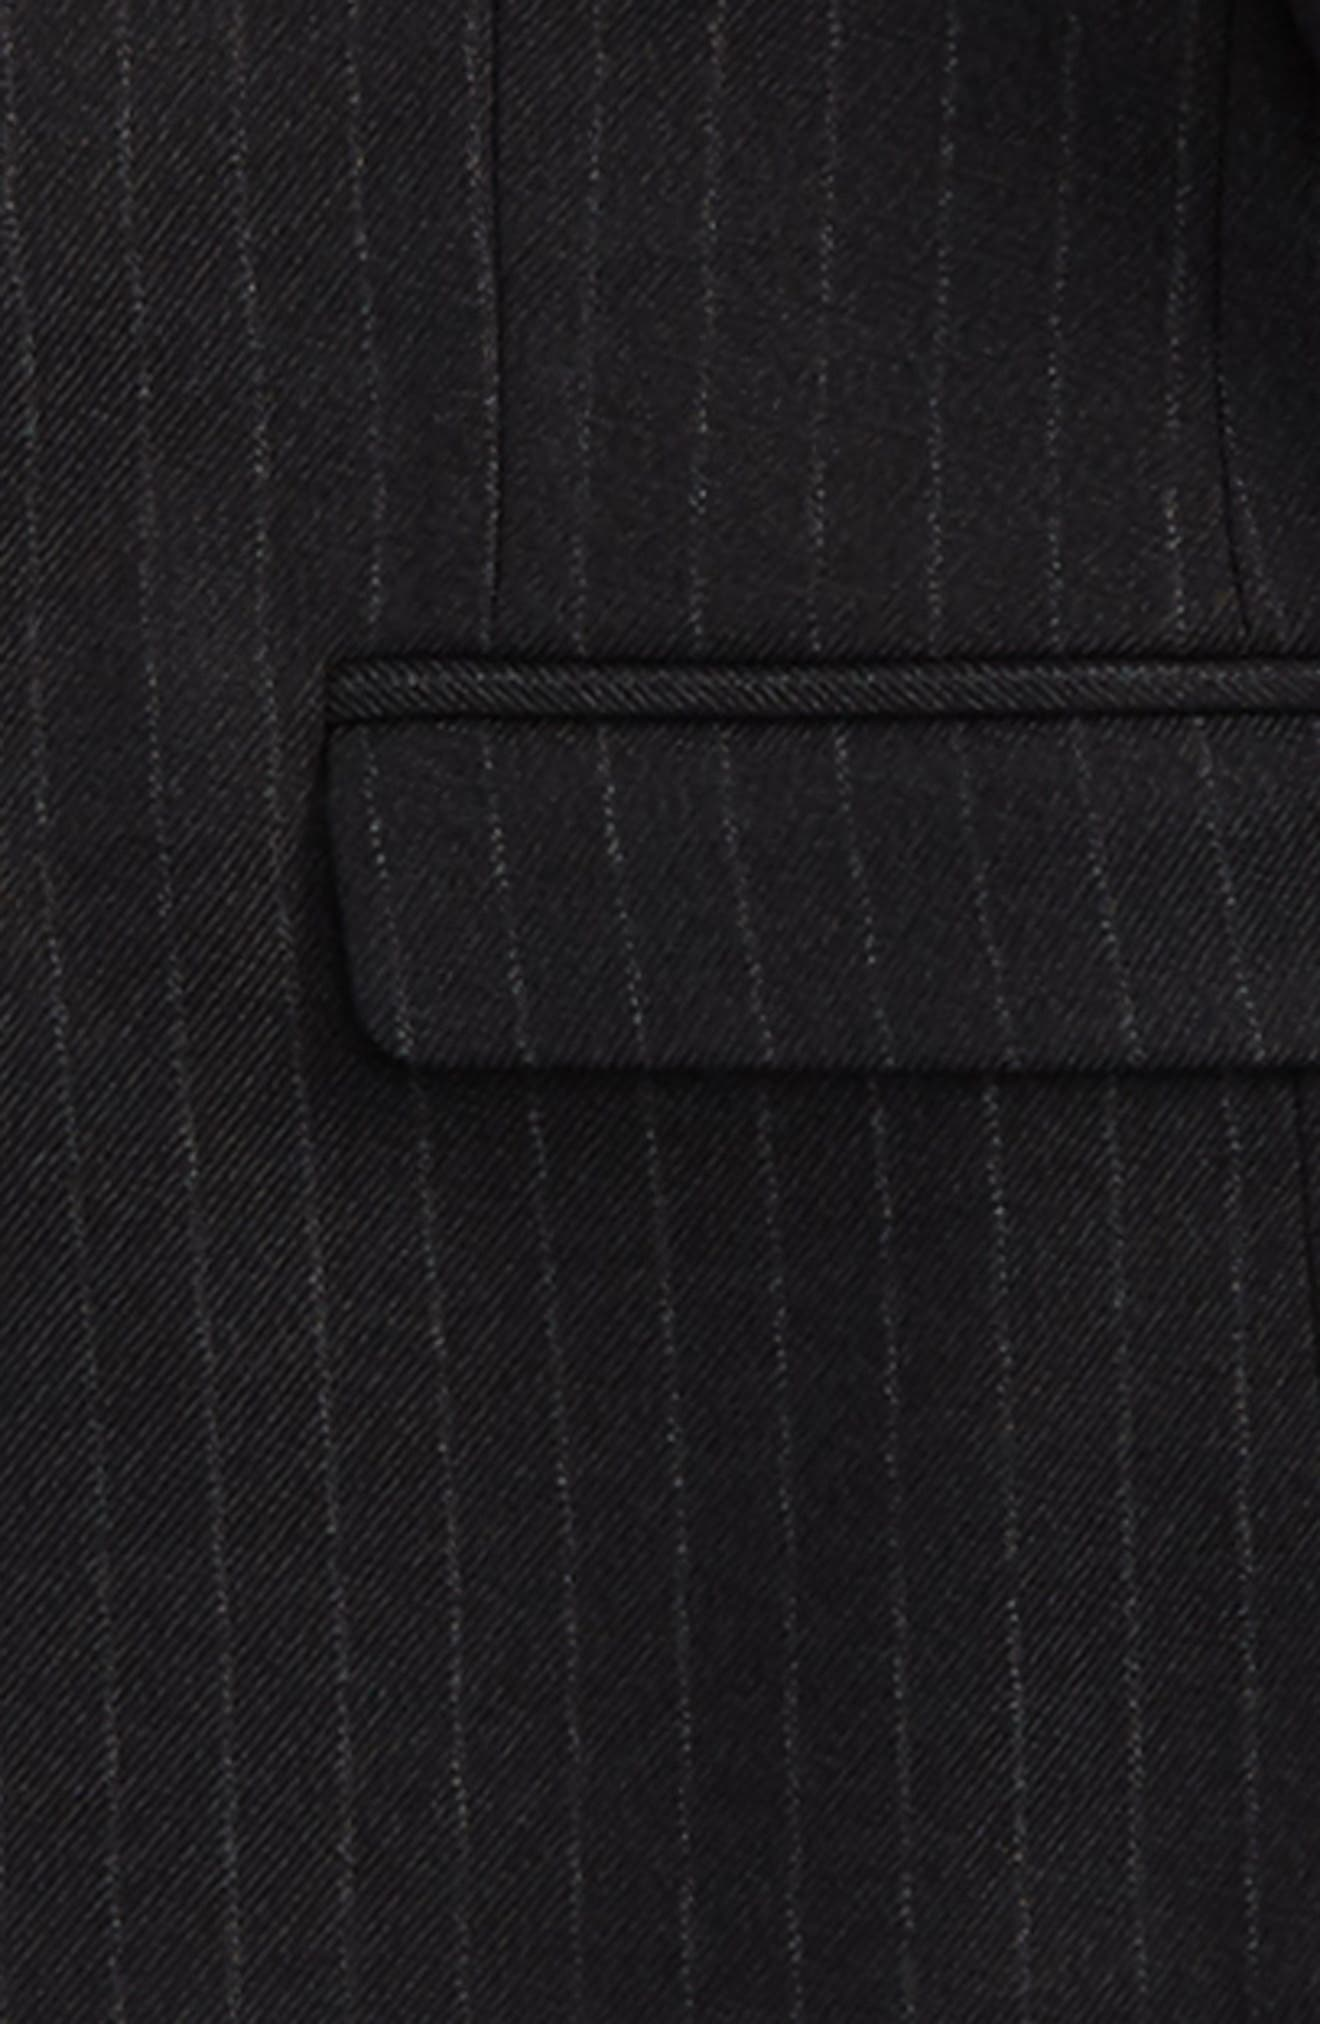 Mod Pinstripe Suit,                             Alternate thumbnail 2, color,                             020